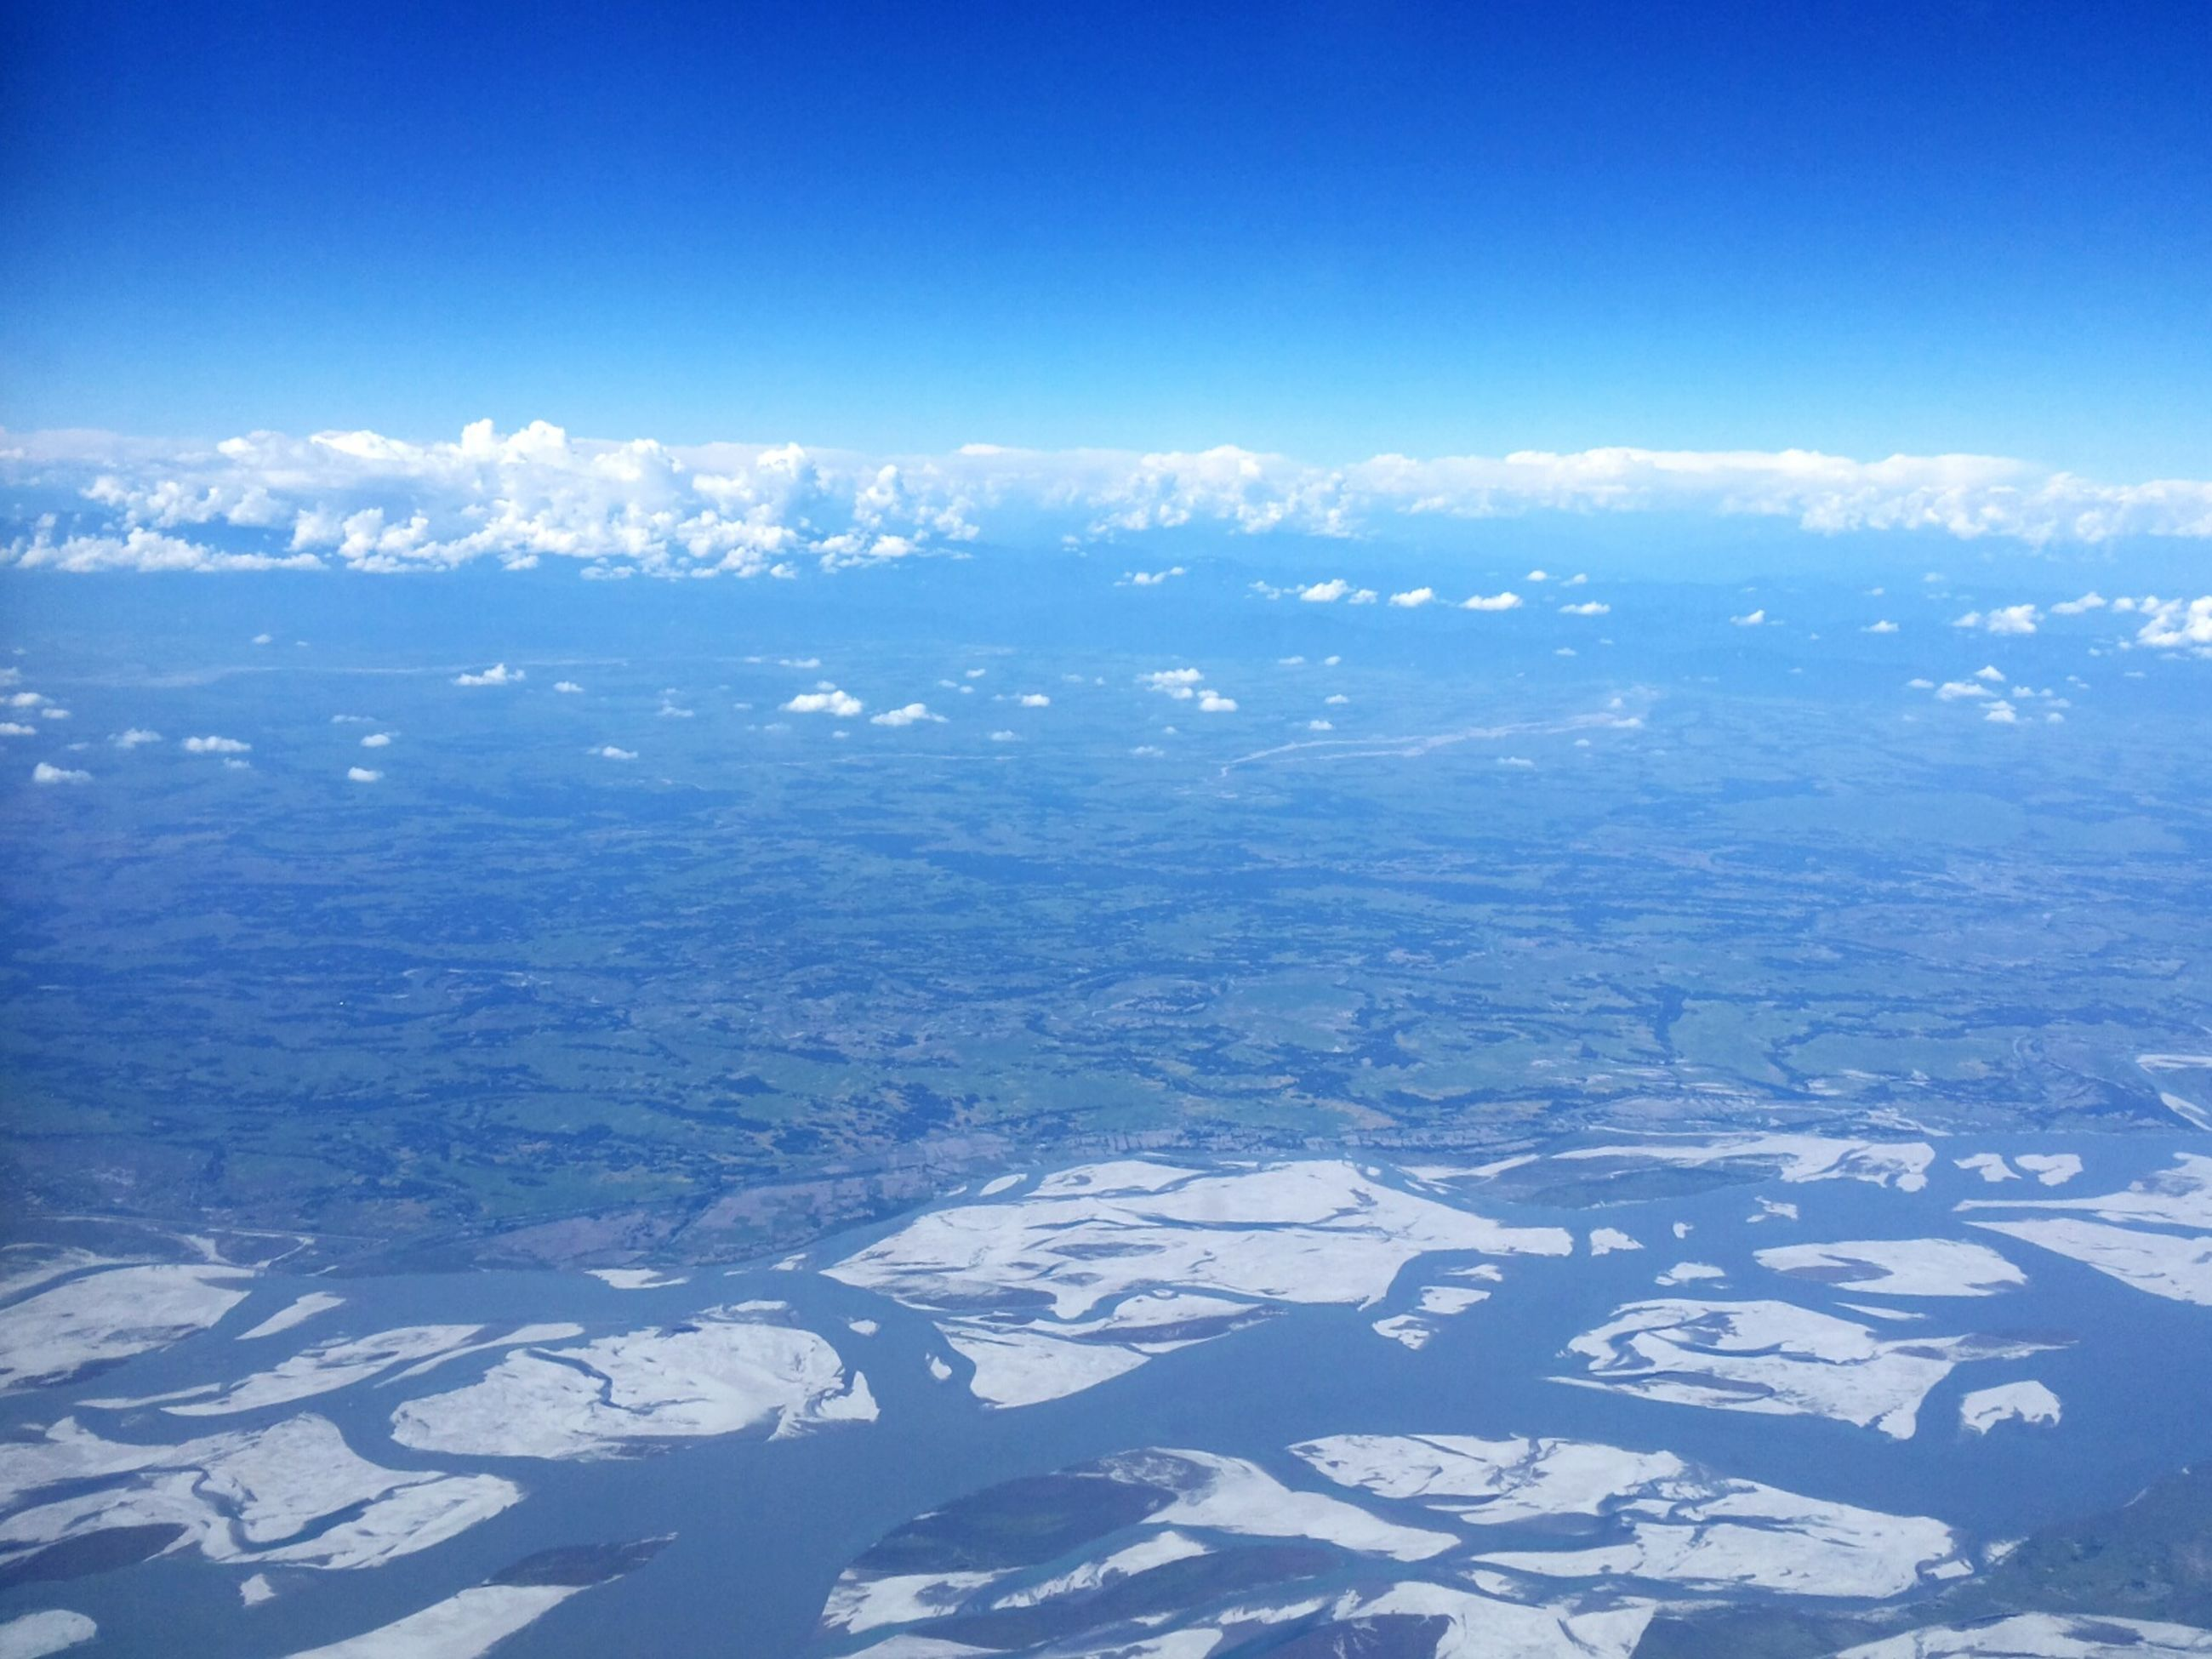 blue, aerial view, scenics, beauty in nature, tranquil scene, tranquility, nature, landscape, sky, copy space, idyllic, day, no people, white color, outdoors, flying, mountain, clear sky, cloud, majestic